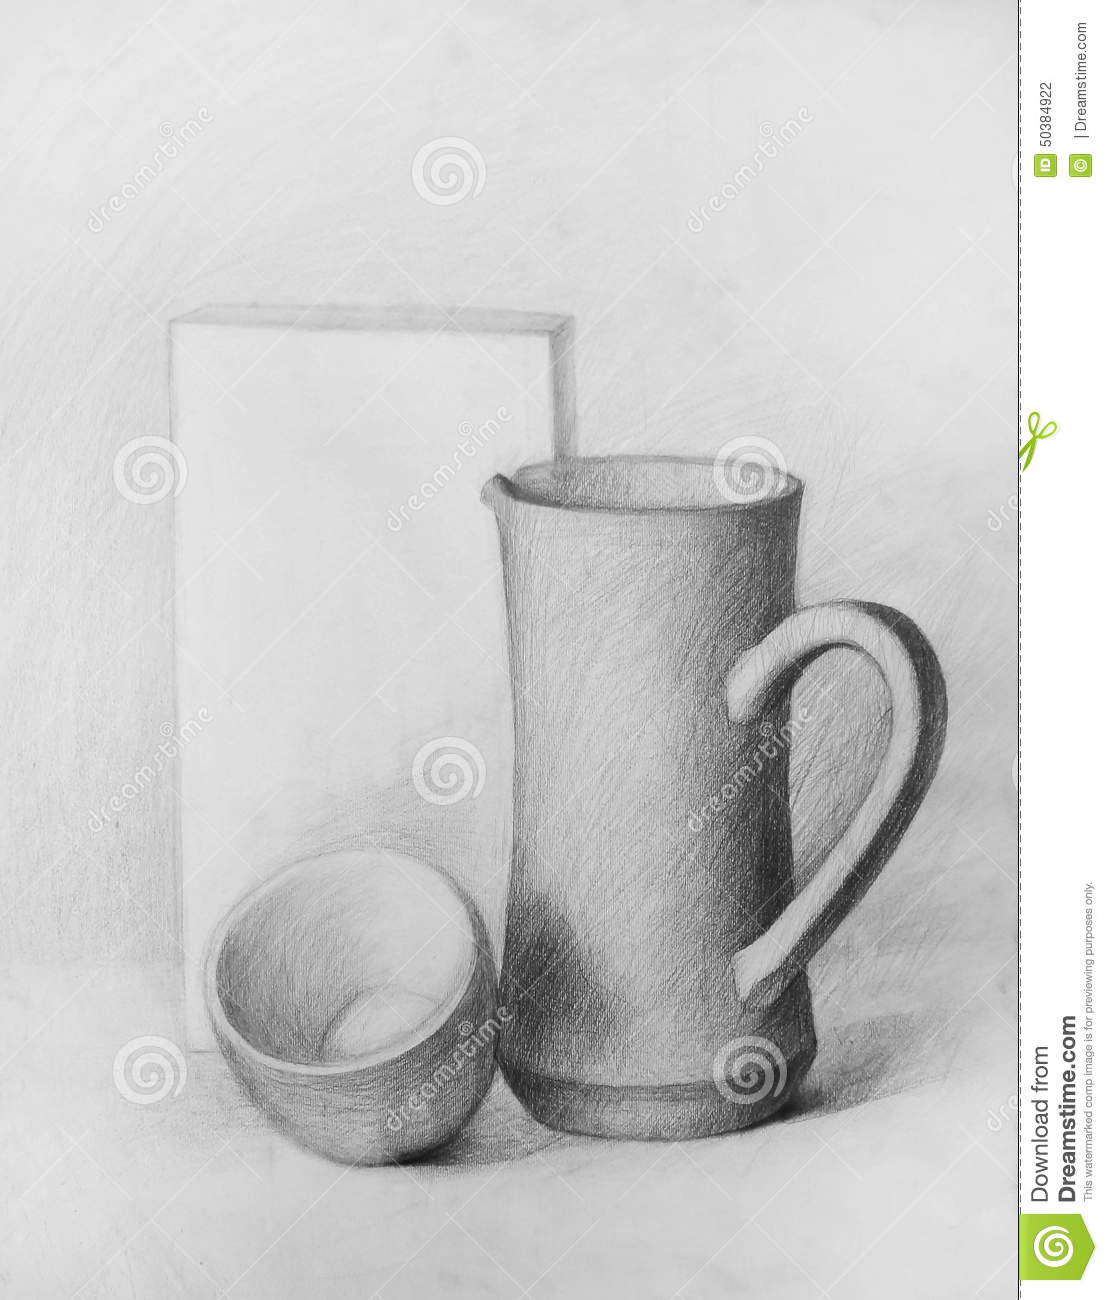 Pencil Drawing Composition Stock Illustration Illustration Of Studies Rectangle 50384922